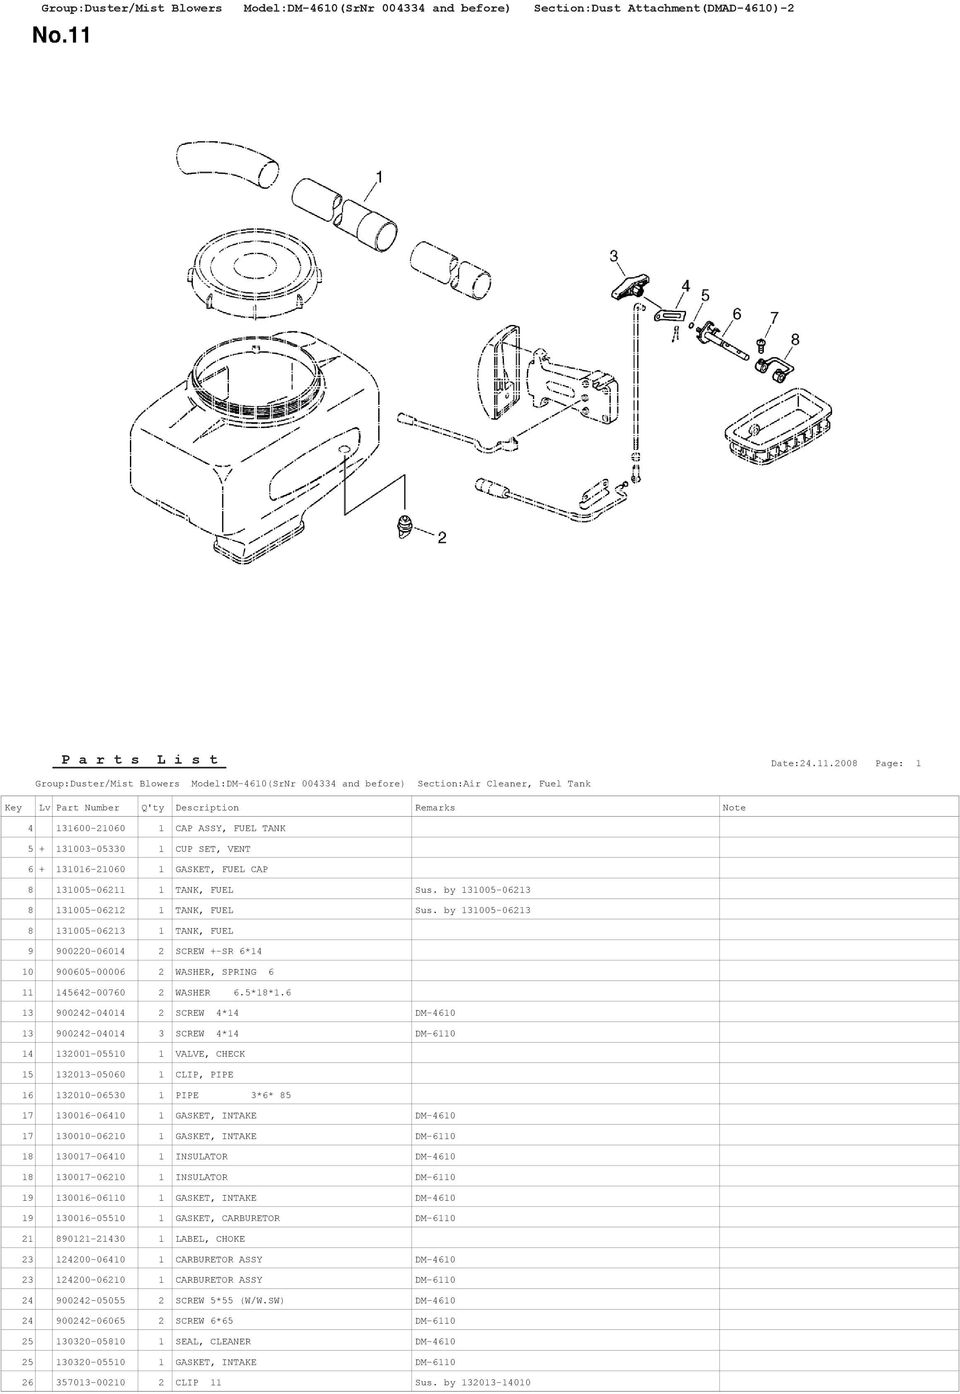 by 131005-06213 8 131005-06213 1 TANK, FUEL 9 900220-06014 2 SCREW +-SR 6*14 10 900605-00006 2 WASHER, SPRING 6 11 145642-00760 2 WASHER 6.5*18*1.